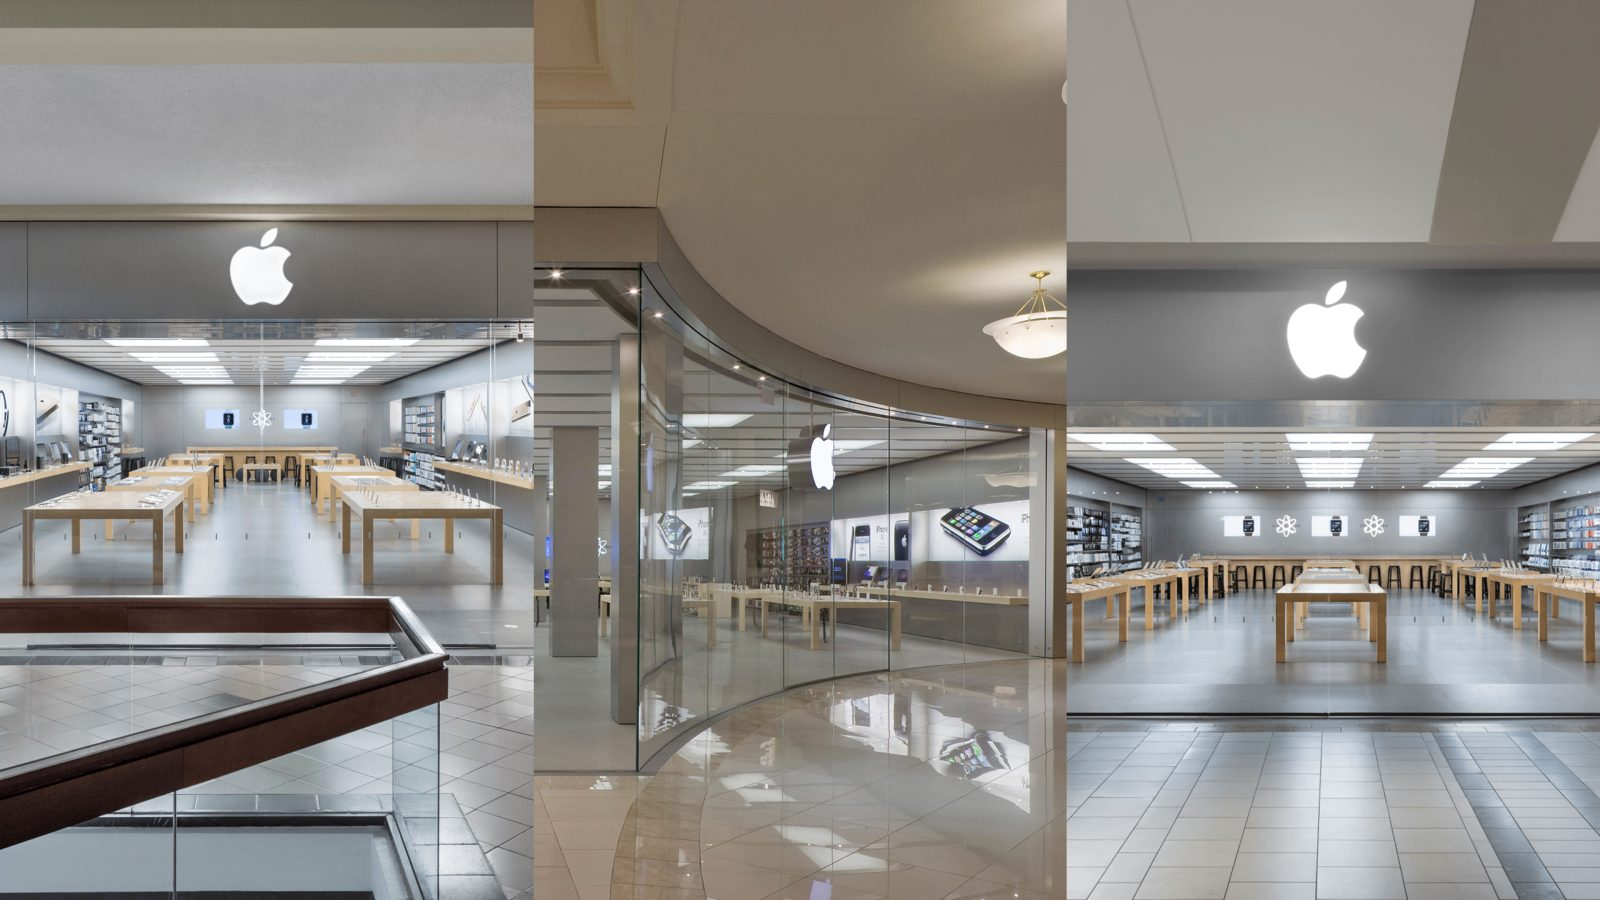 Florida stores: Apple Altamonte closing for renovations January 13th